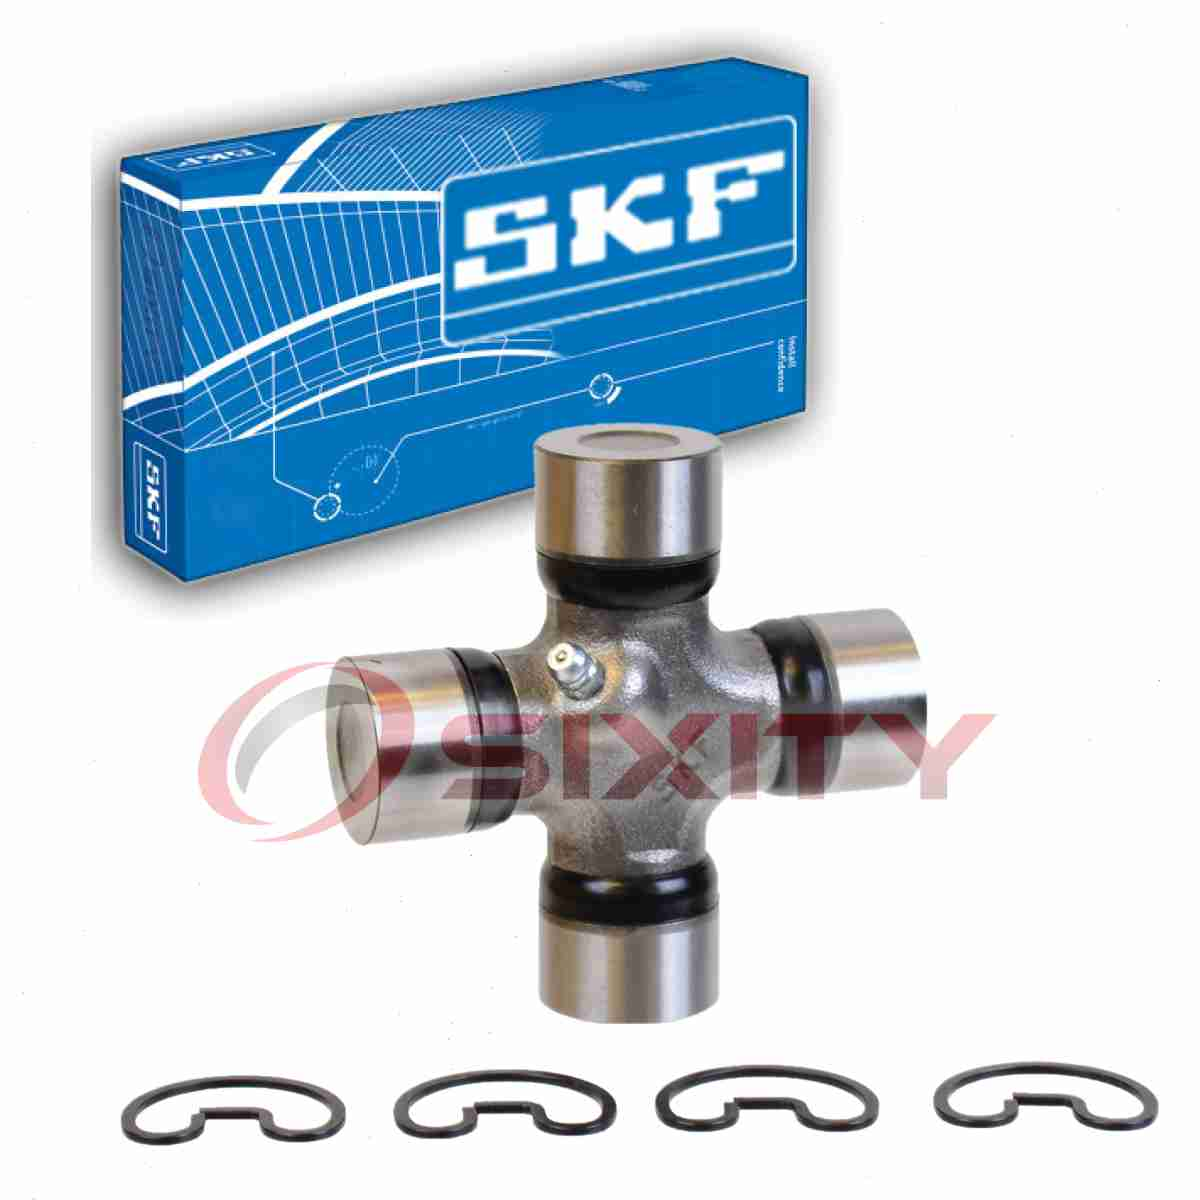 SKF Rear Universal Joint U-Bolt Kit for 1967-1972 Chevrolet C10 Pickup 3.8L gy